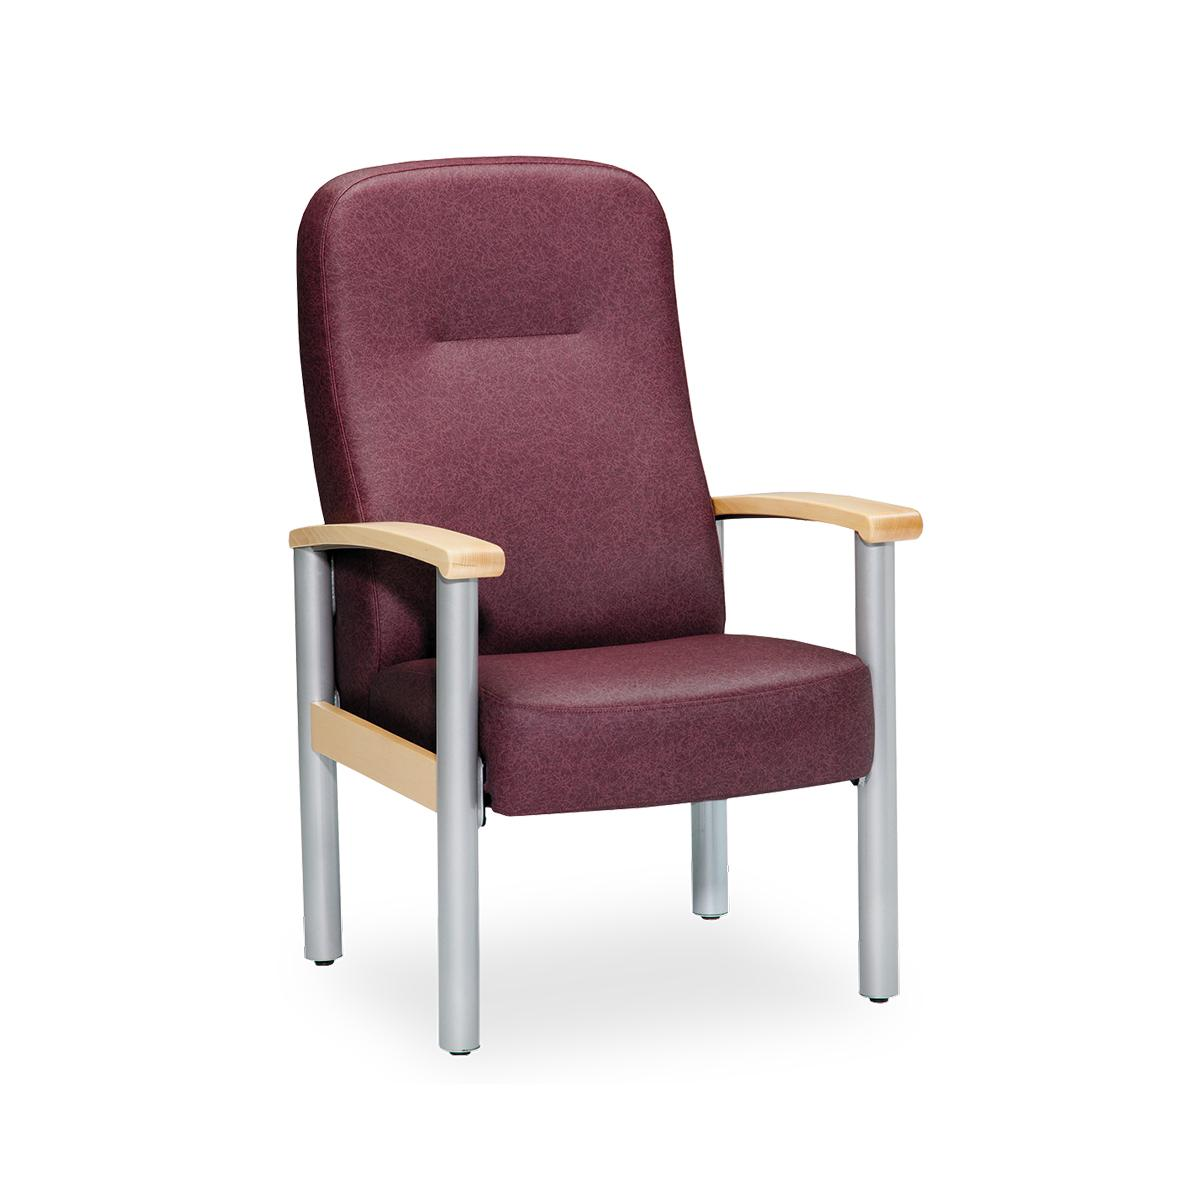 Art of Care Metropolitan highback chair, maroon, 3/4 view